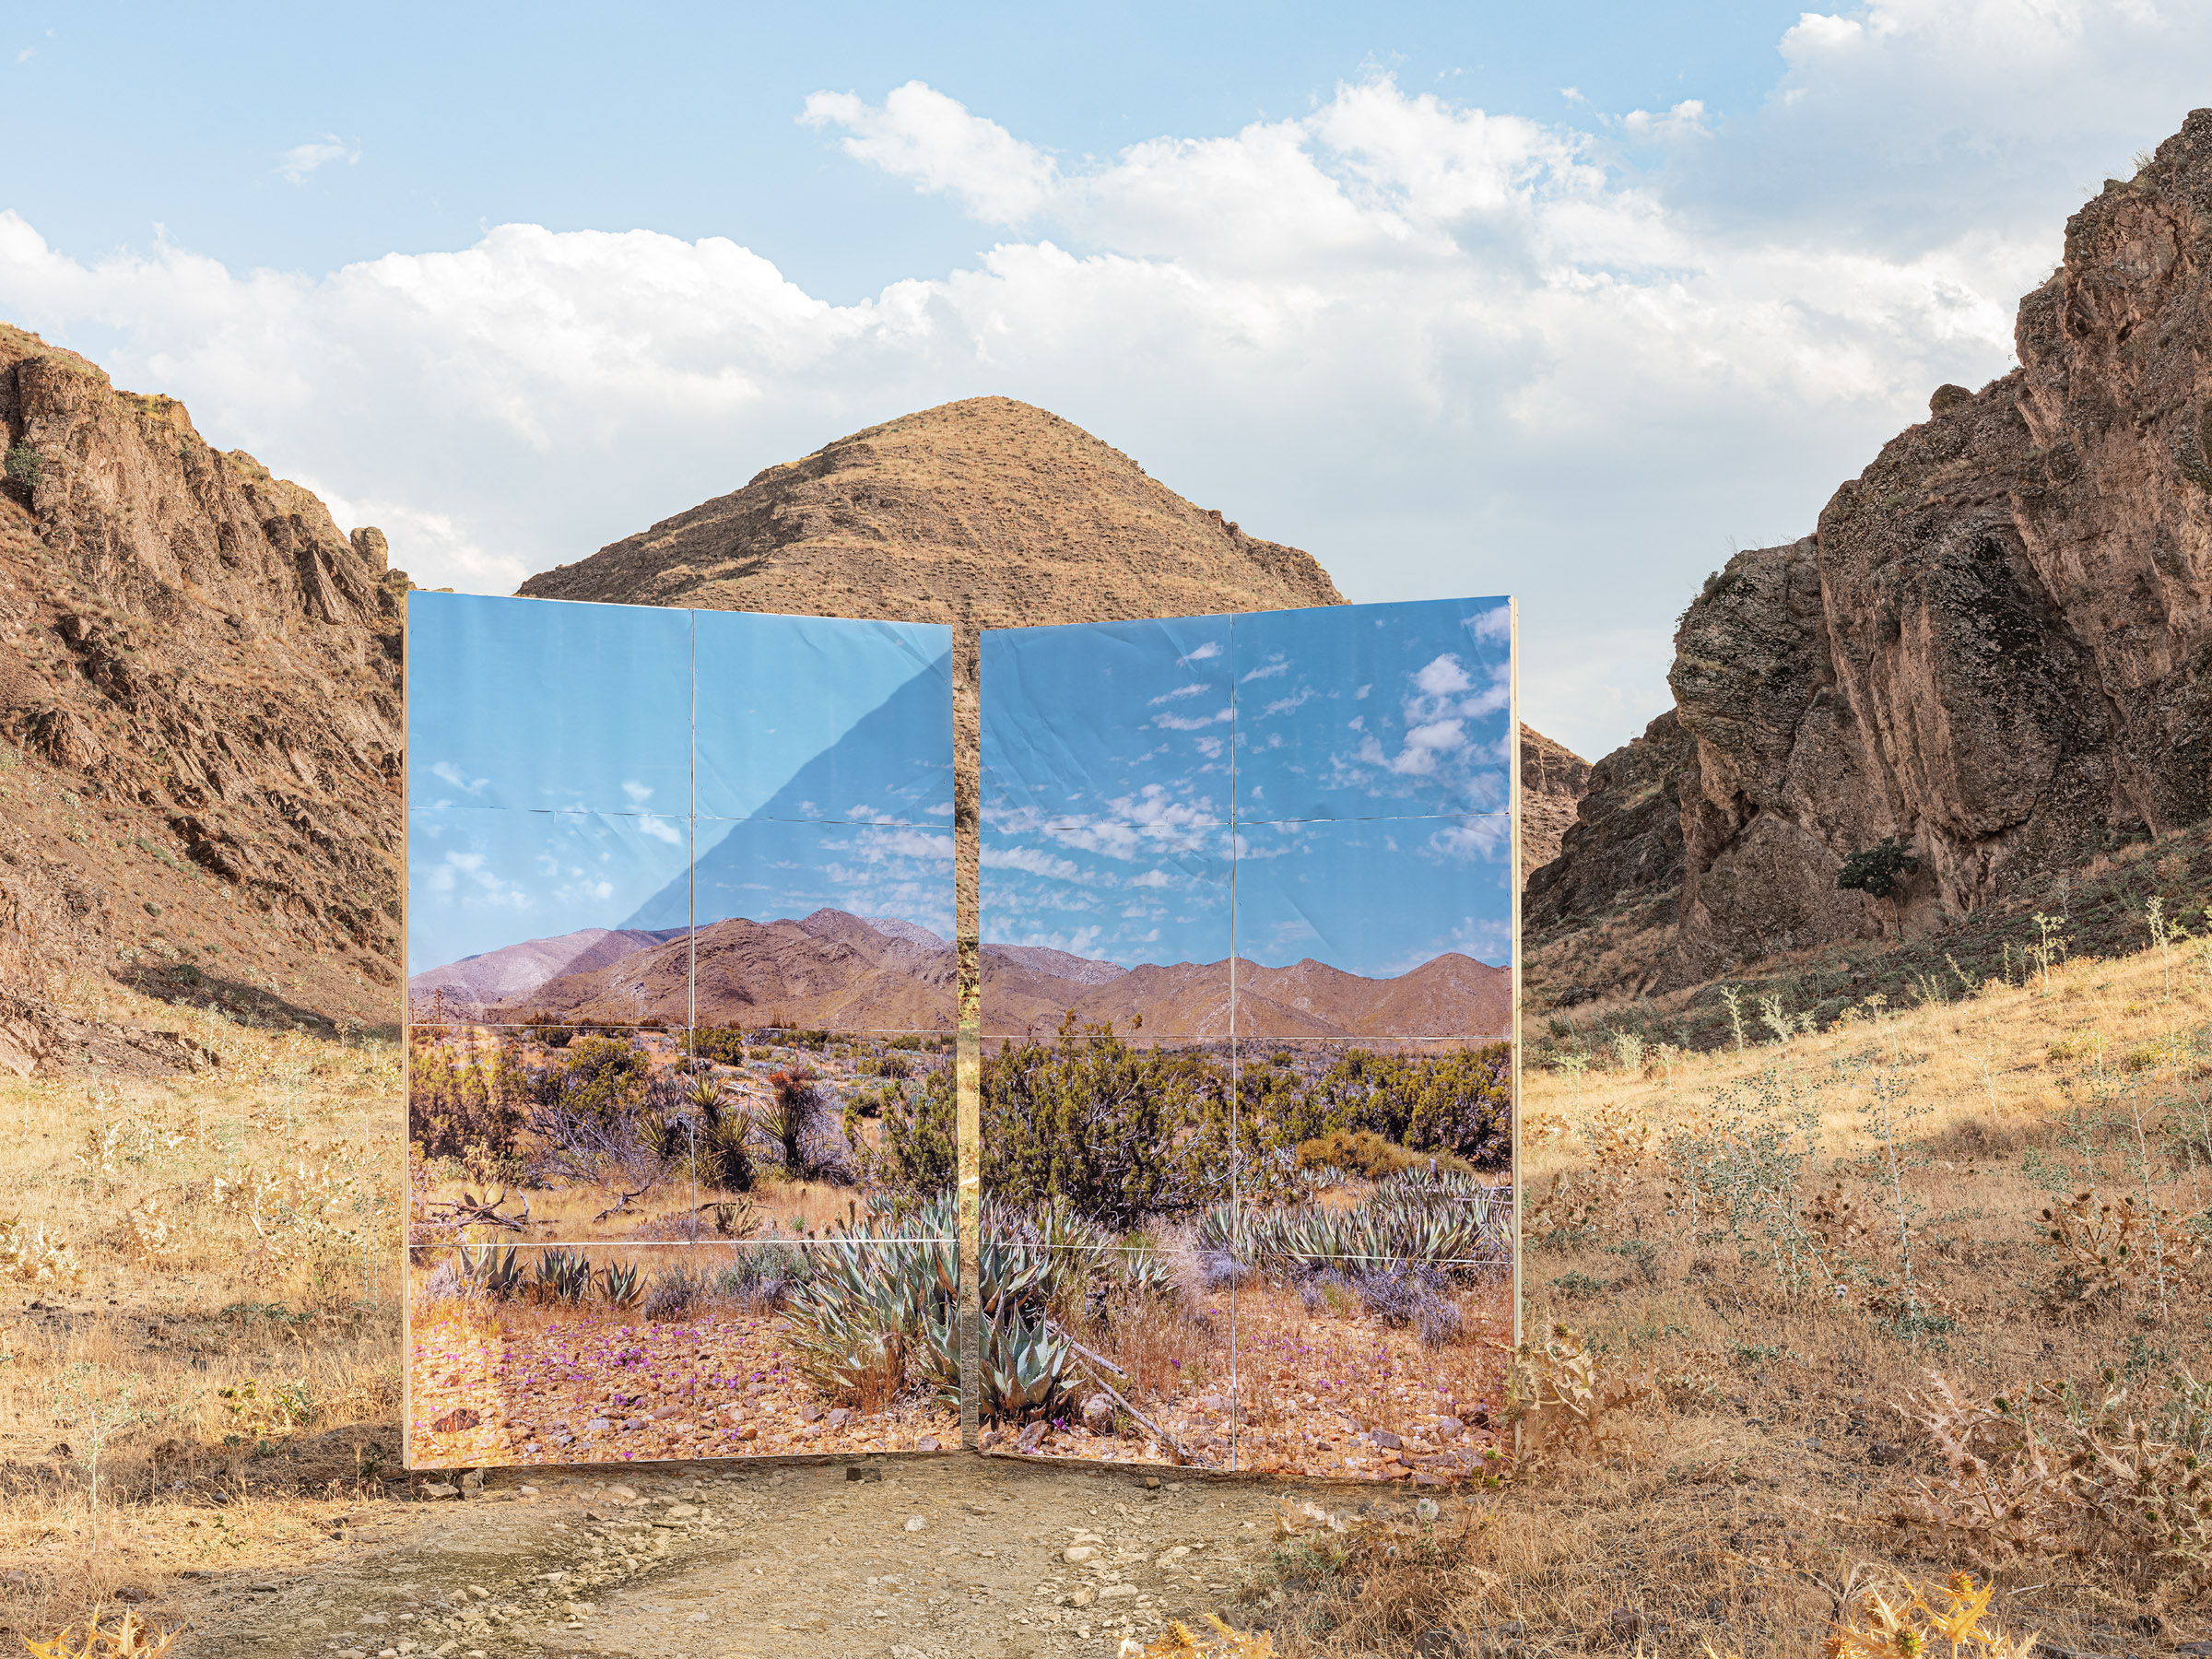 Gohar Dashti, Untitled 9, from the series Land/s, 2019. Courtesy of the artist